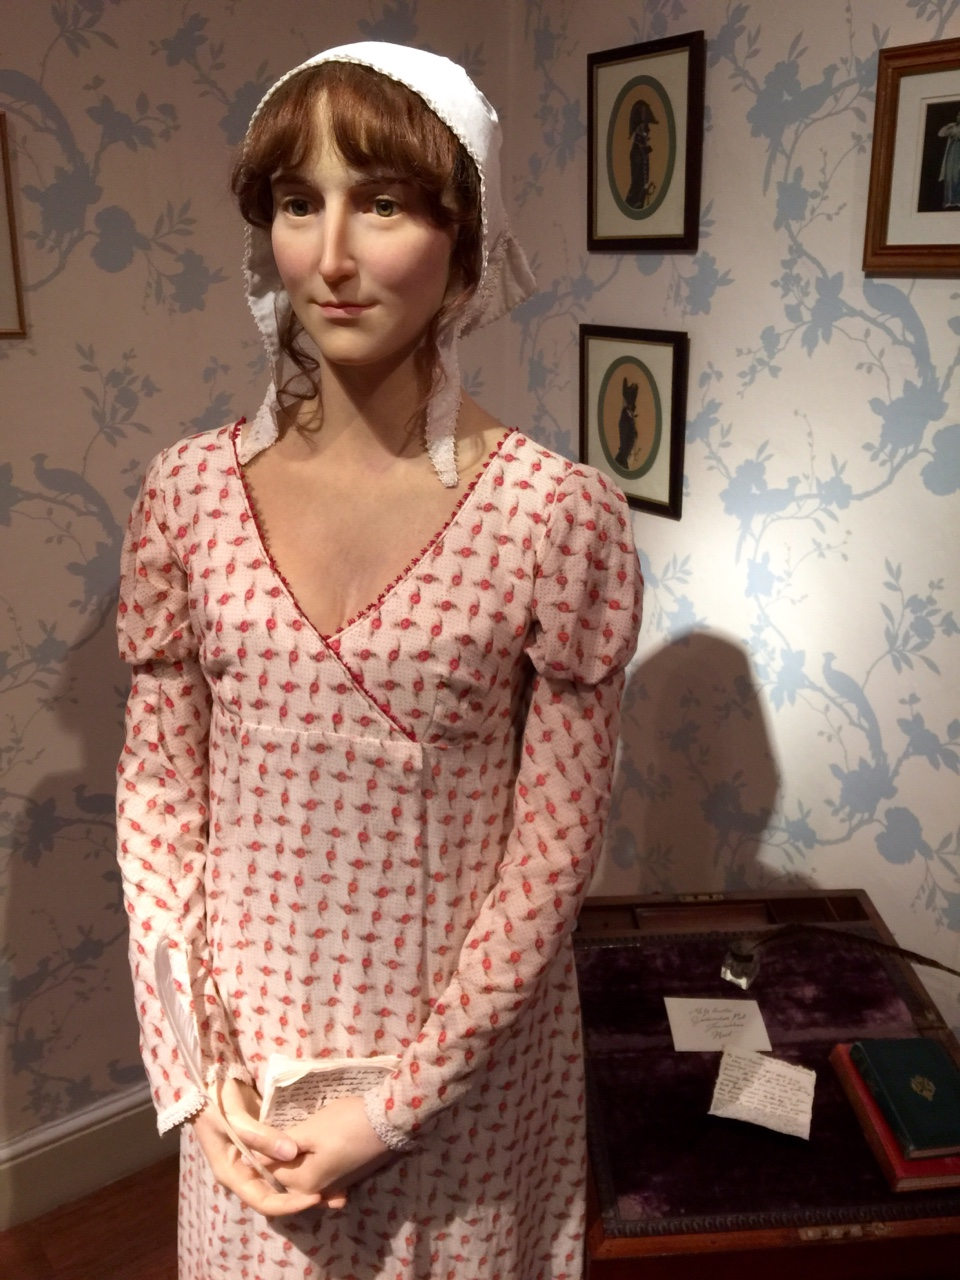 Jane Austen Waxwork - Jane Austen Centre in Bath, United Kingdom